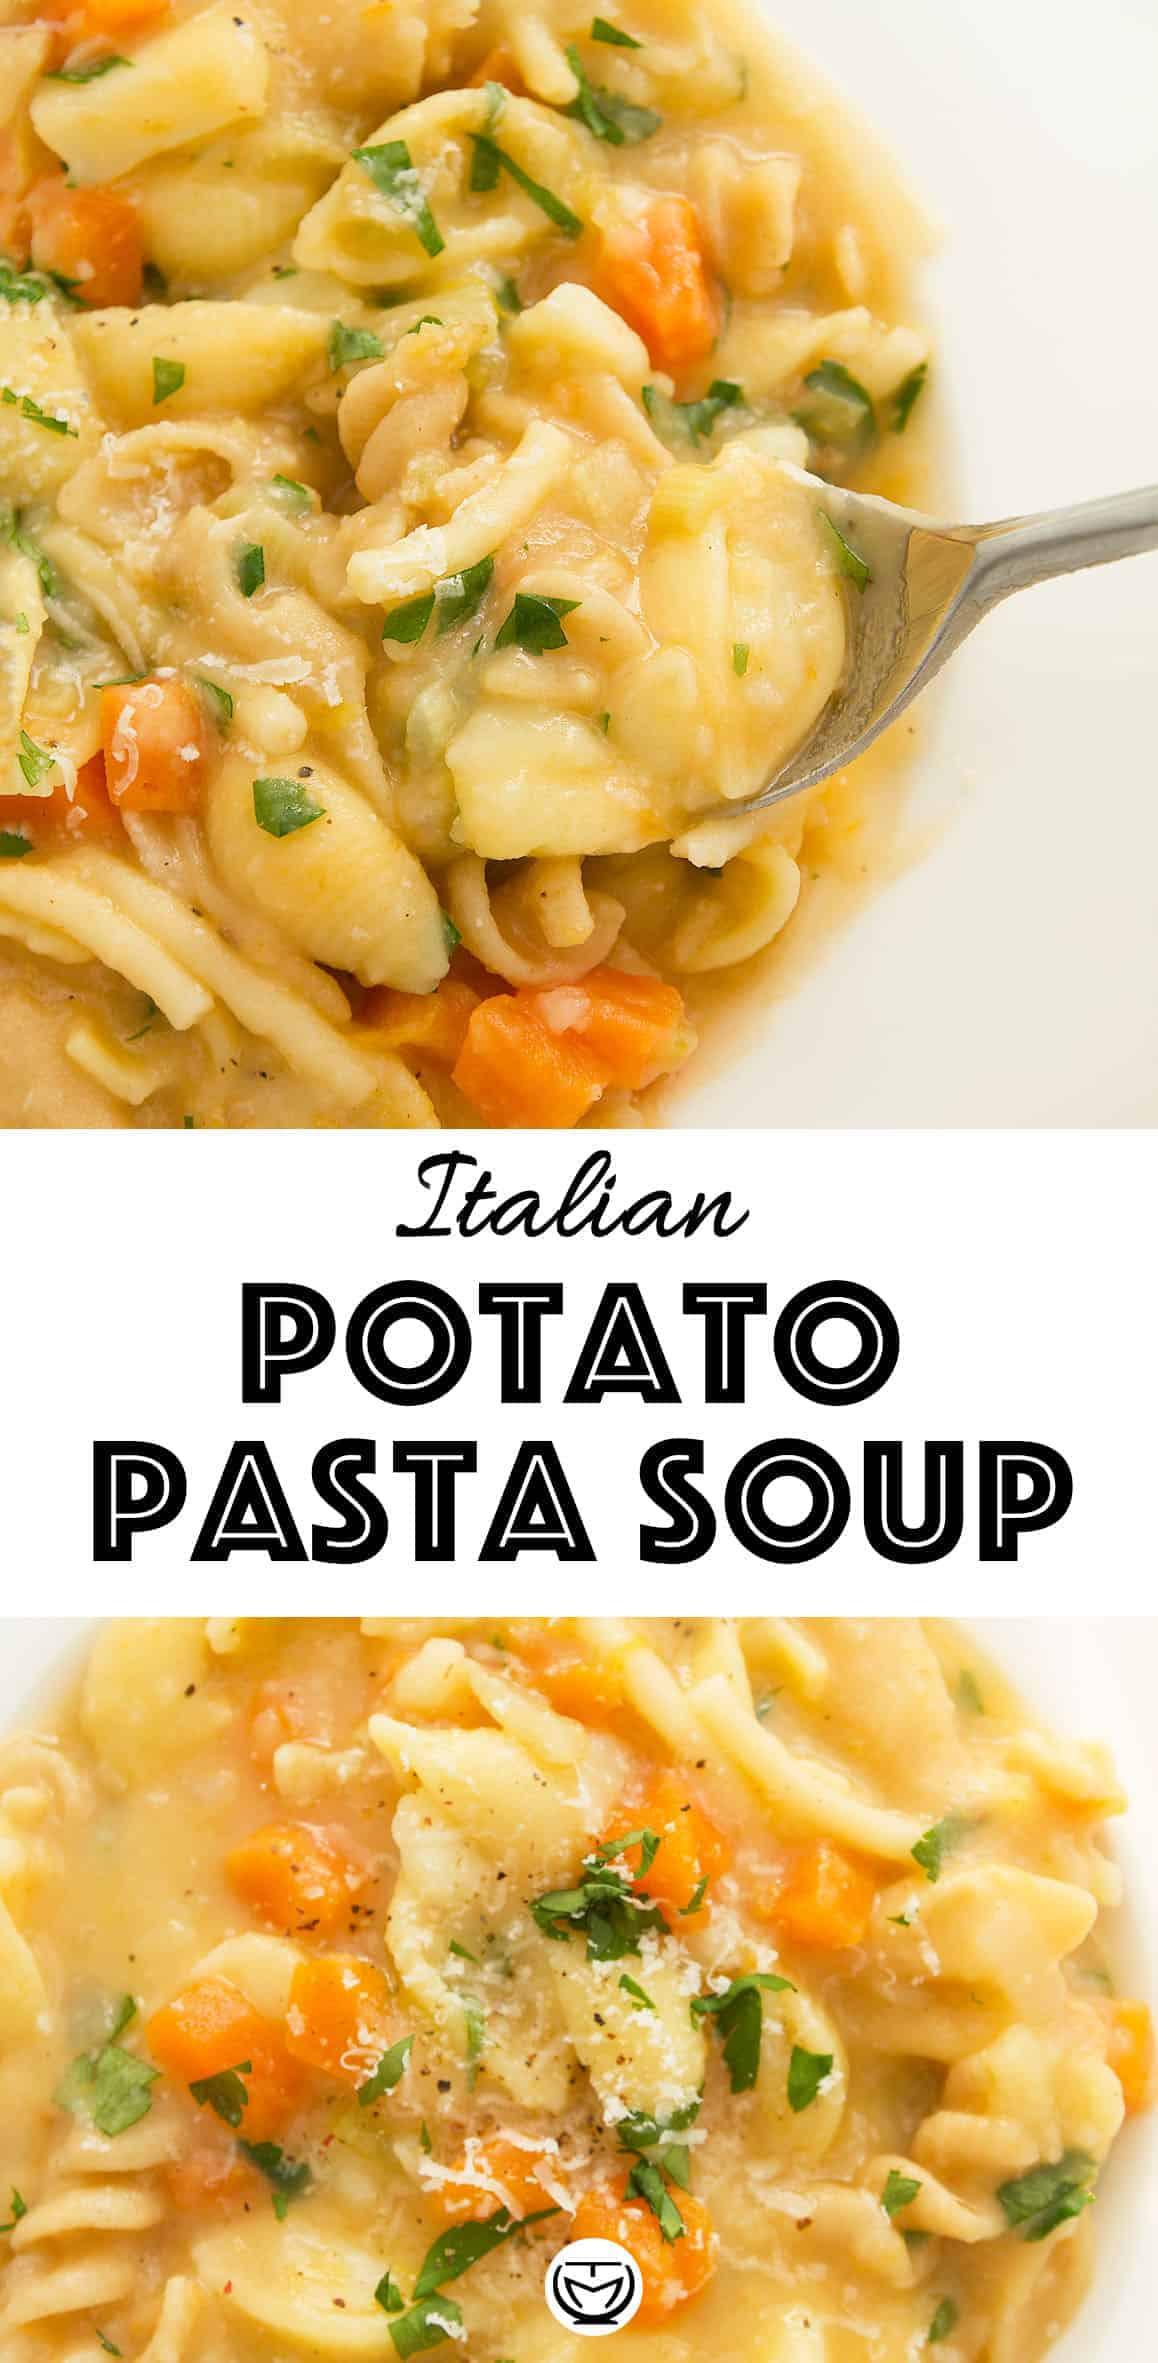 Carbs + carbs? Yes, this is comfort food and you're gonna love this soupy potato pasta! It's packed with delicious flavor, creamy texture, but this is also an easy and cheap midweek lifesaver and makes a quick family dinner in no time. #pastarecipes #vegetarianrecipes #potatorecipes #cheapmeals #cheapdinners #easydinnerrecipes